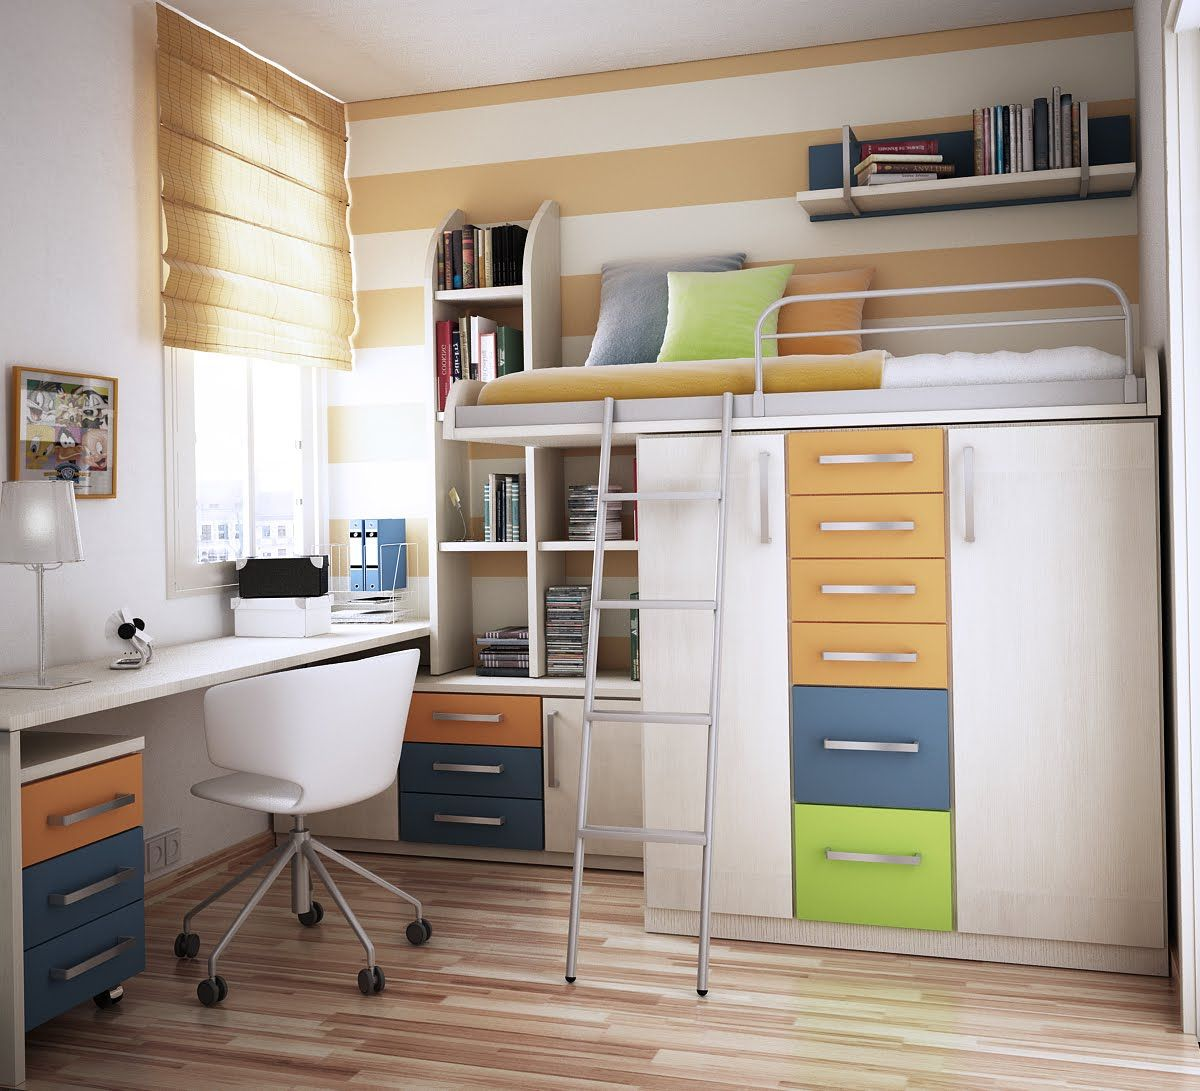 25 Cool Bed Ideas For Small Rooms Beds For Small Rooms Small